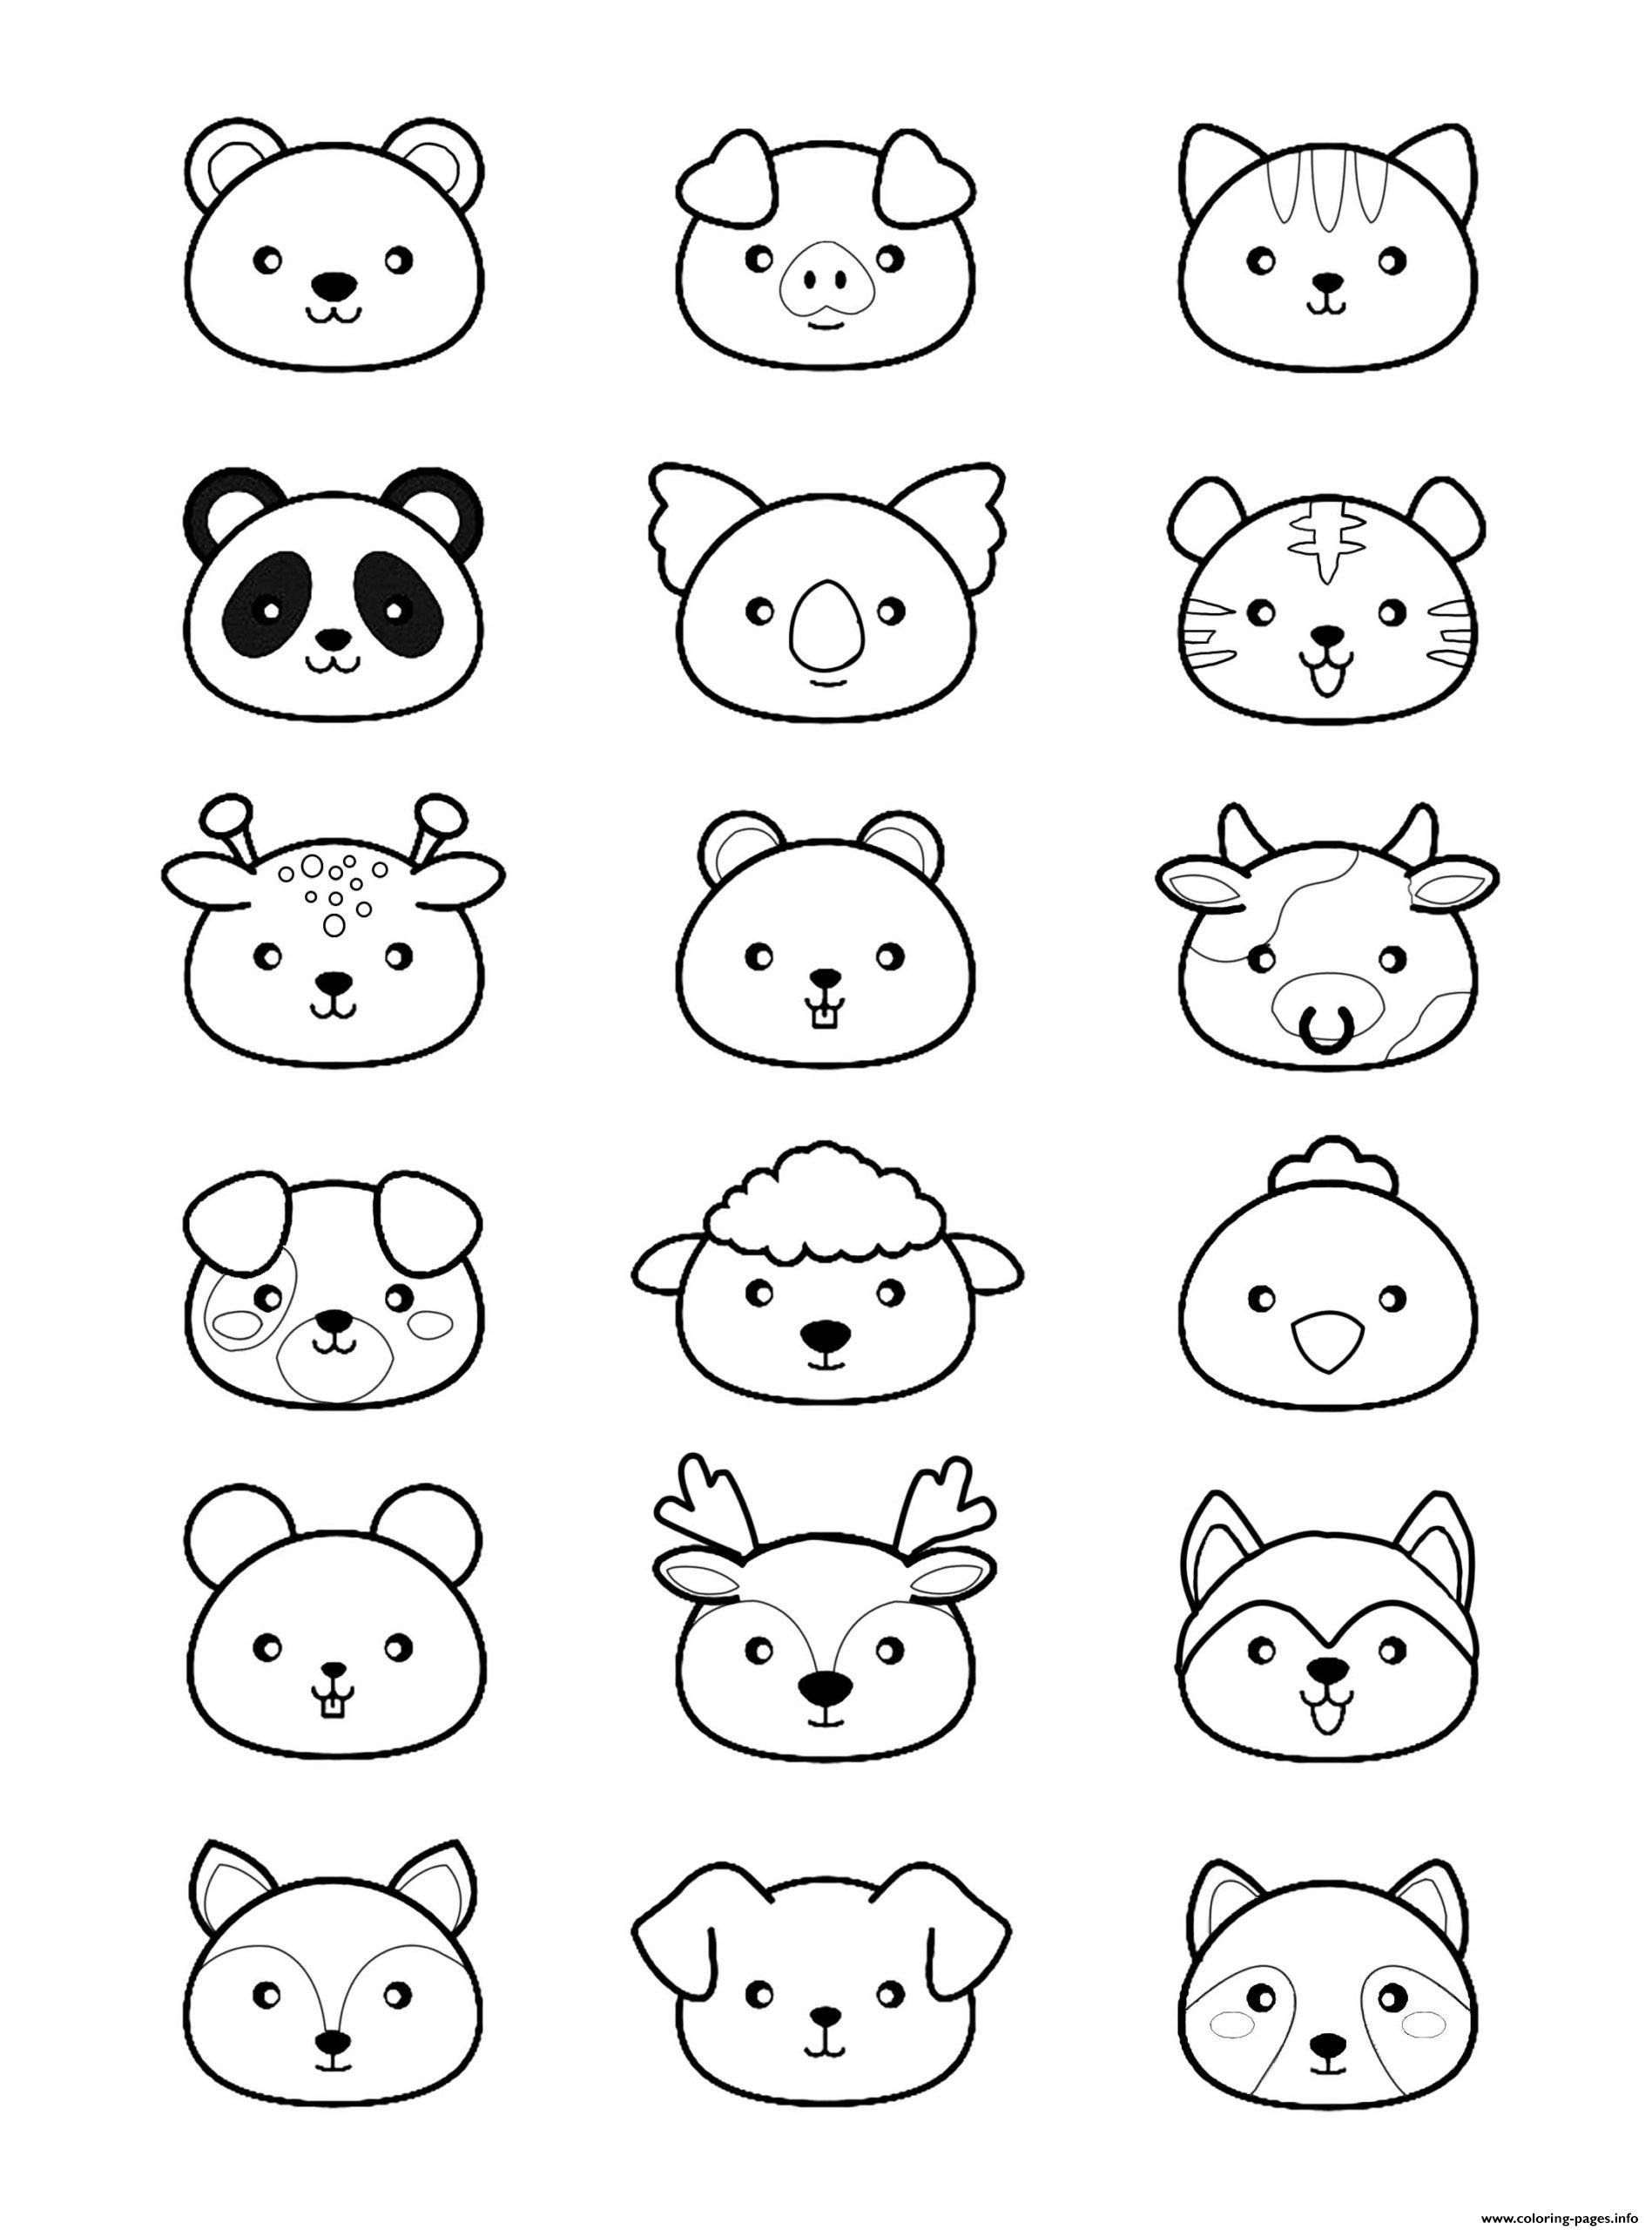 Cute Coloring Page Printable Animals Kawaii Cute Coloring Pages Printable Panda Coloring Pages Cute Kawaii Drawings Cute Coloring Pages